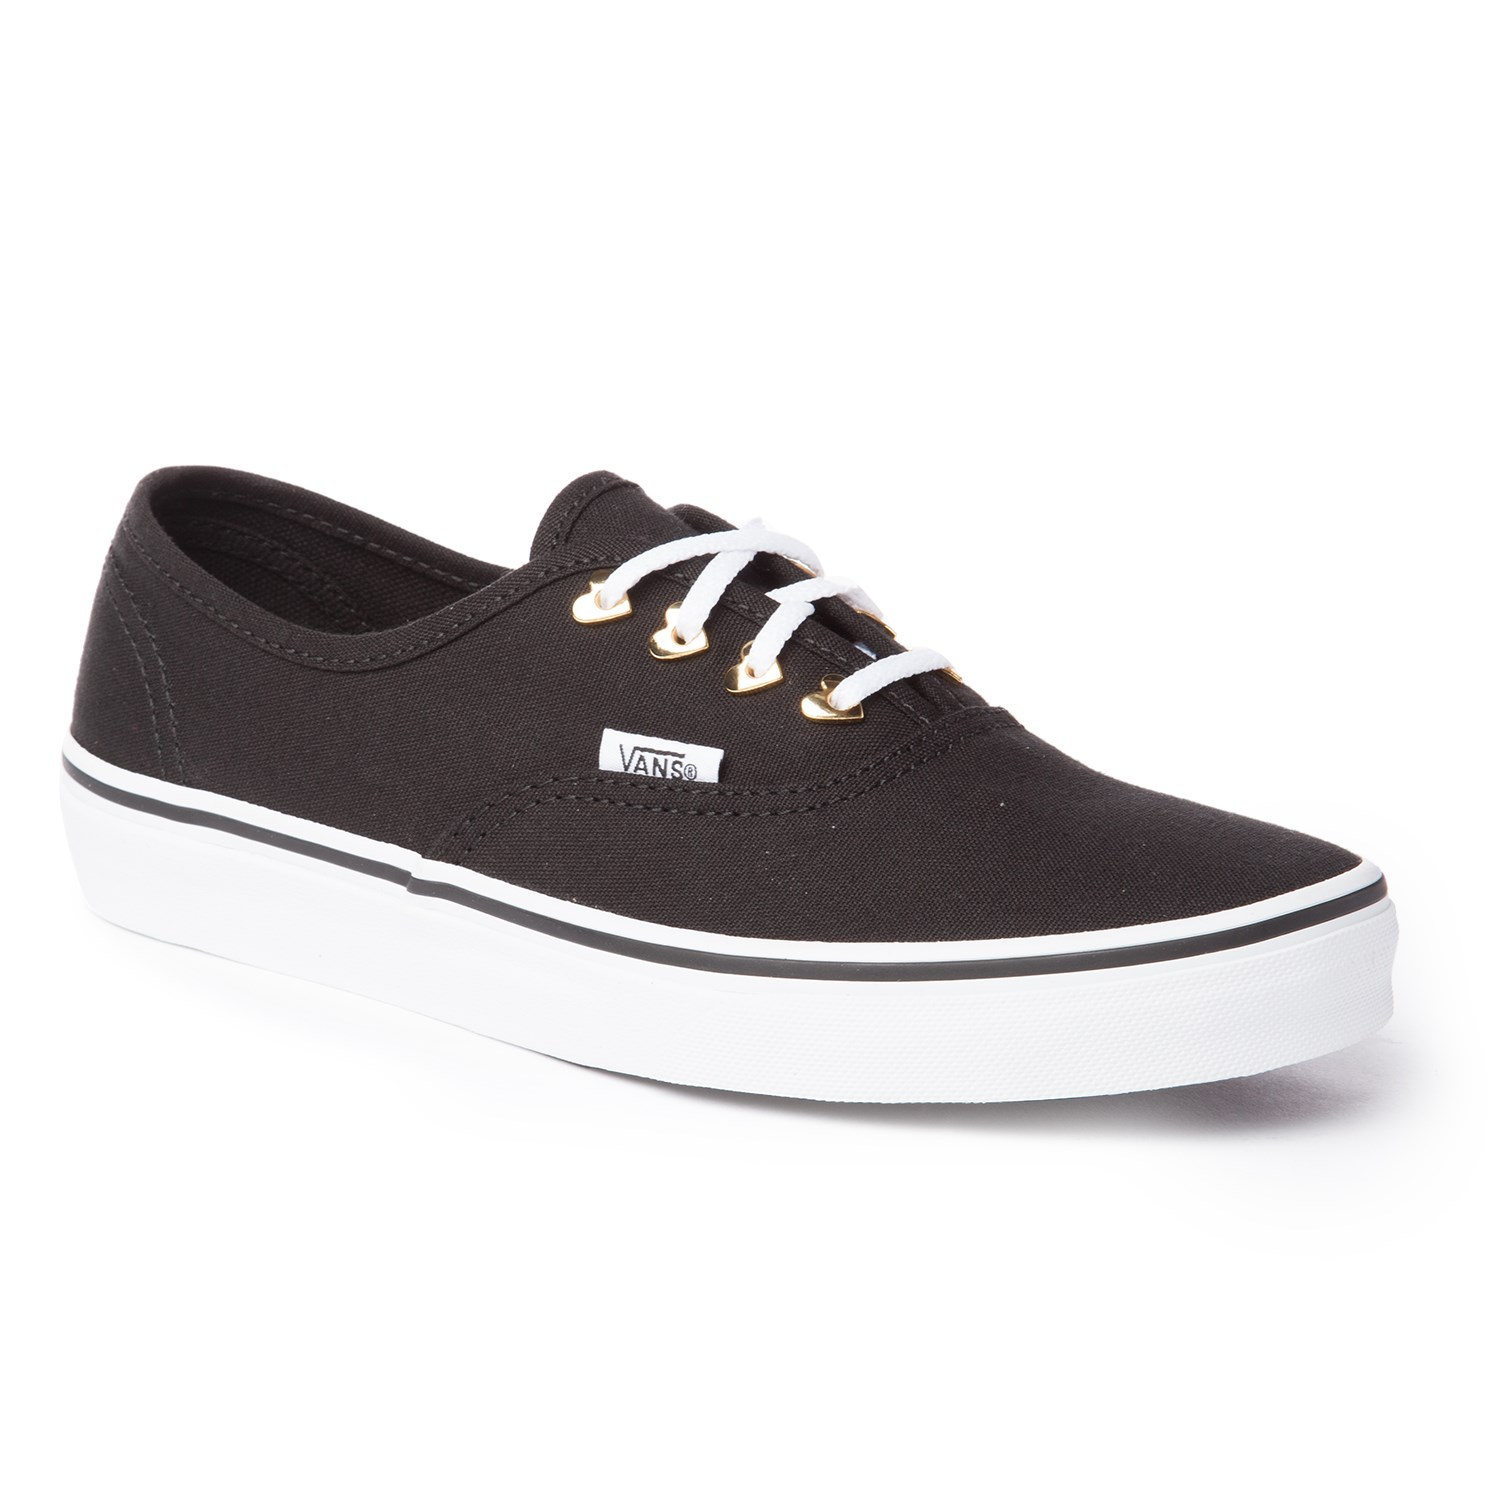 White Vans Shoes For Girls